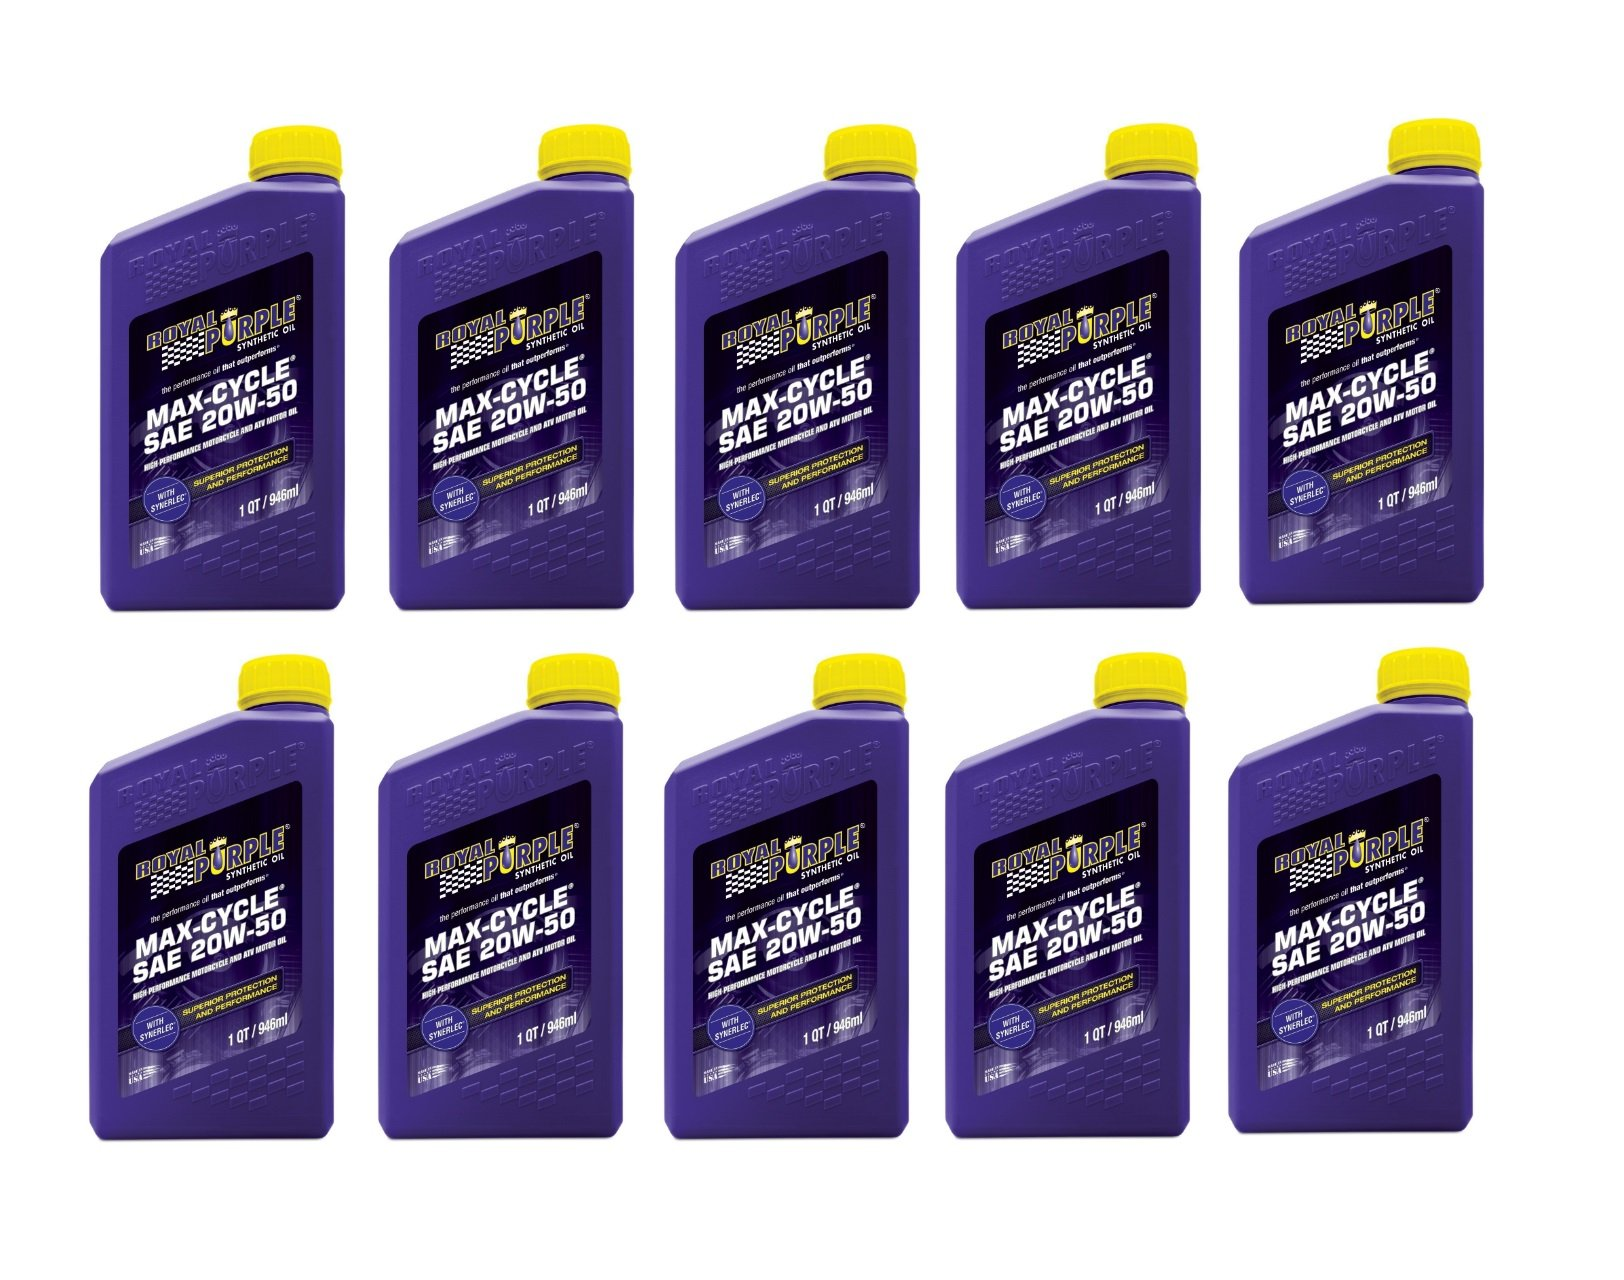 Royal Purple Max Cycle 20W50 High Performance Synthetic Motorcycle Oil - 10 Quart Case